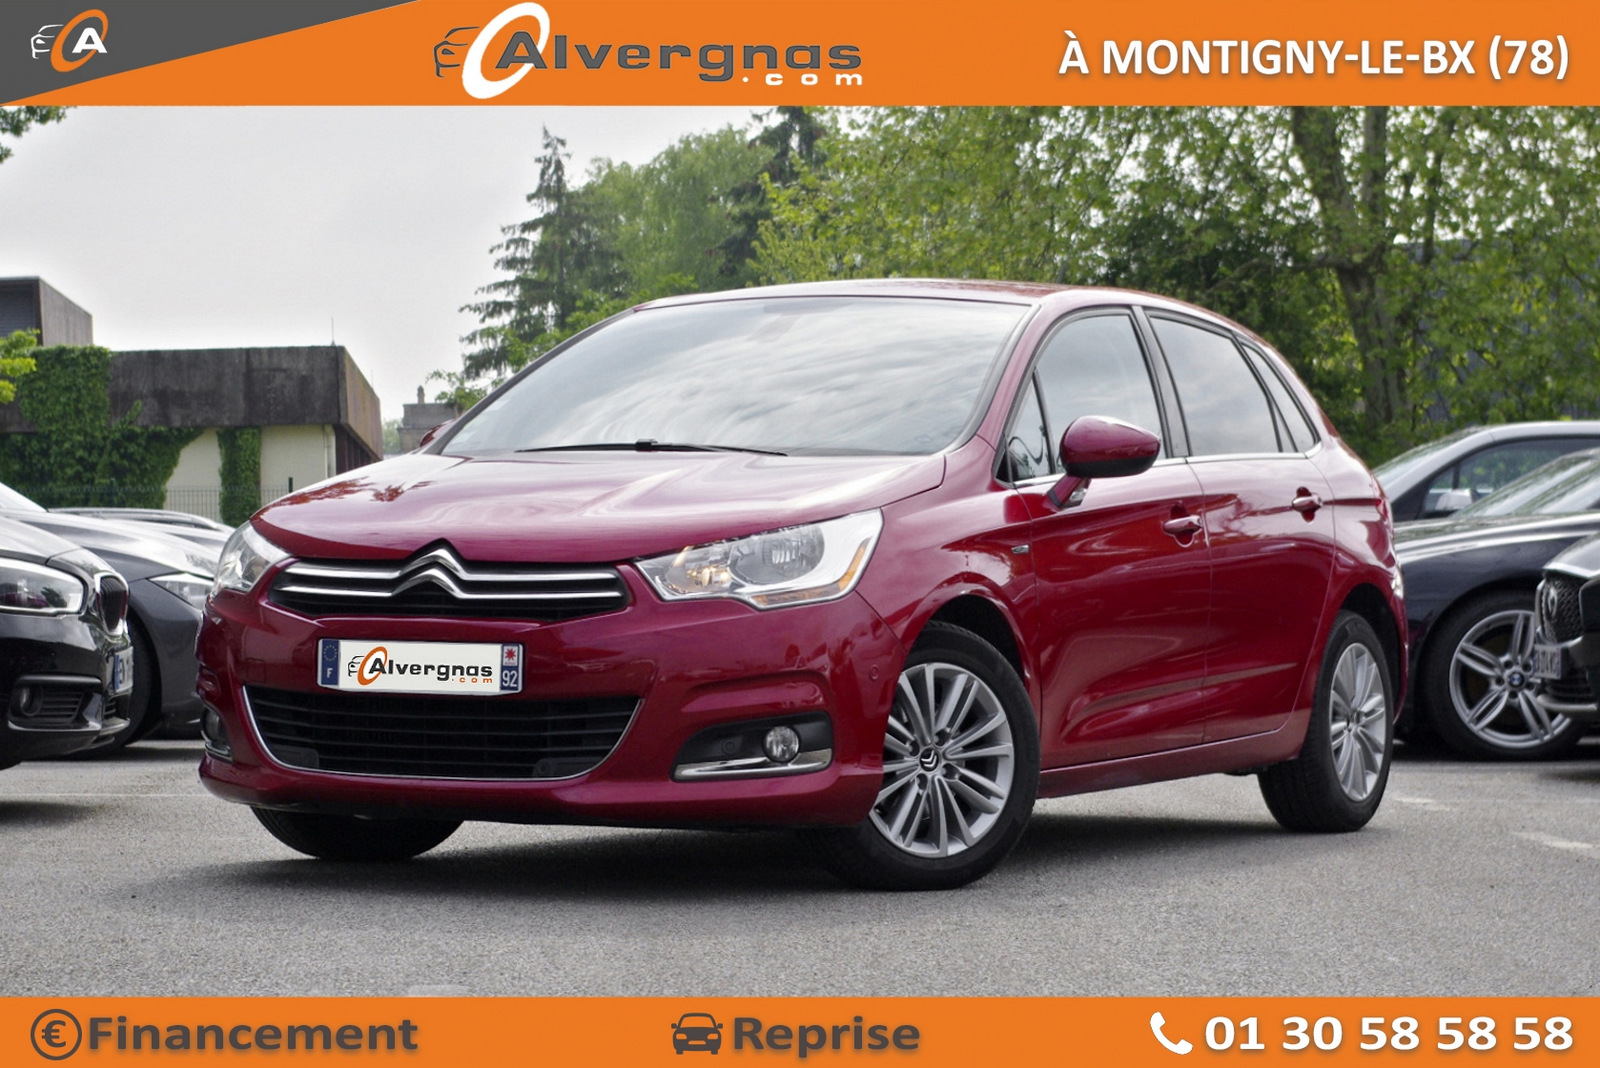 CITROEN C4 d'occasion sur Paris